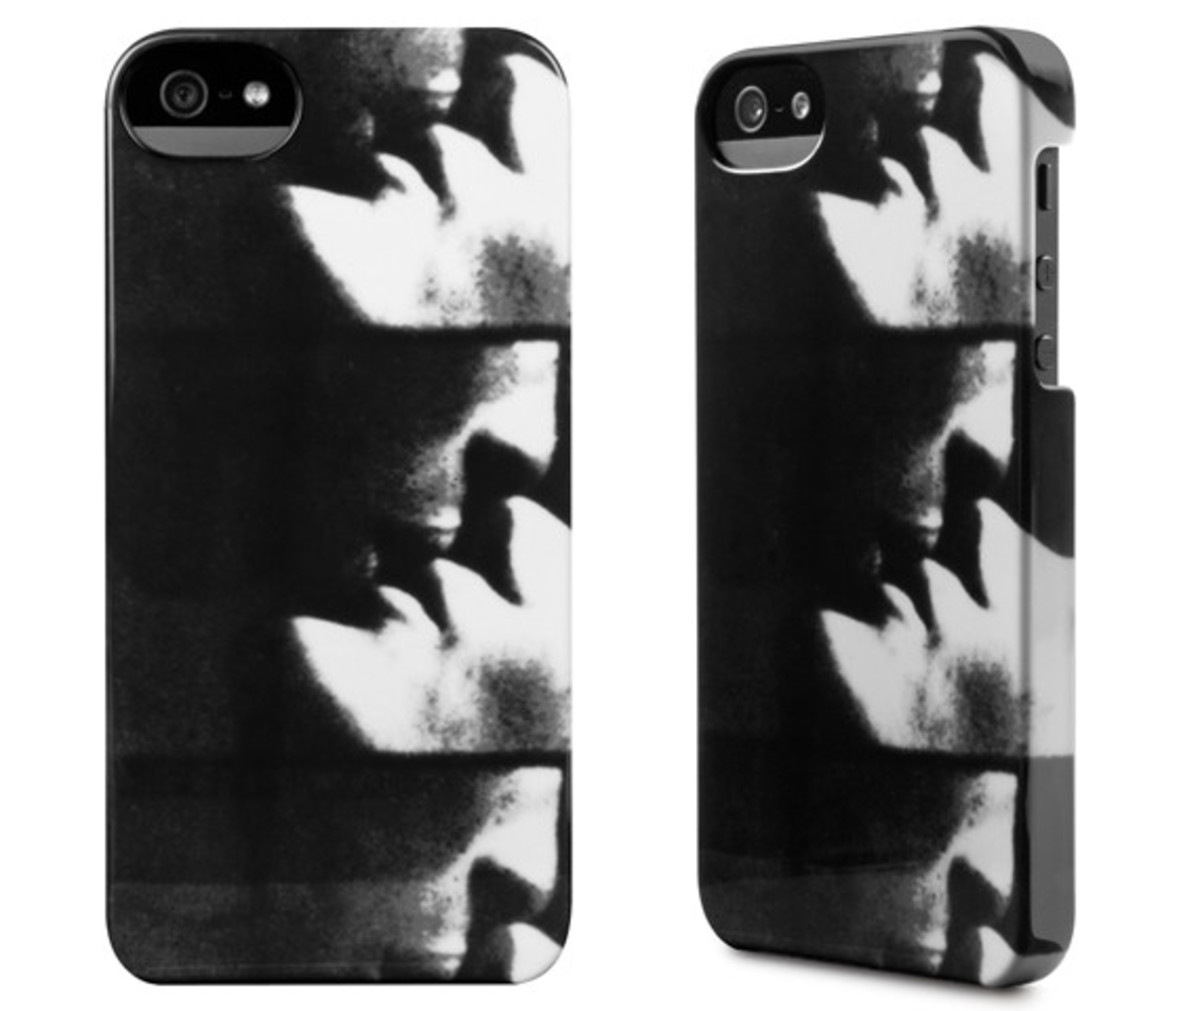 incase-for-andy-warhol-collection-iphone-5-cases-03